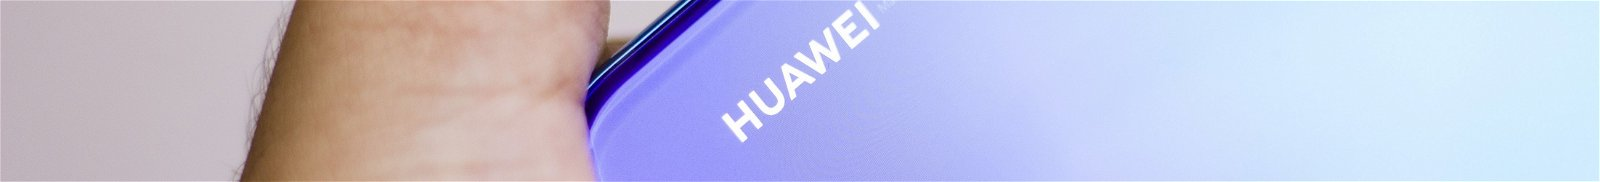 Huawei P30 Lite Review - Best Mid-Range Flagship Android Phone